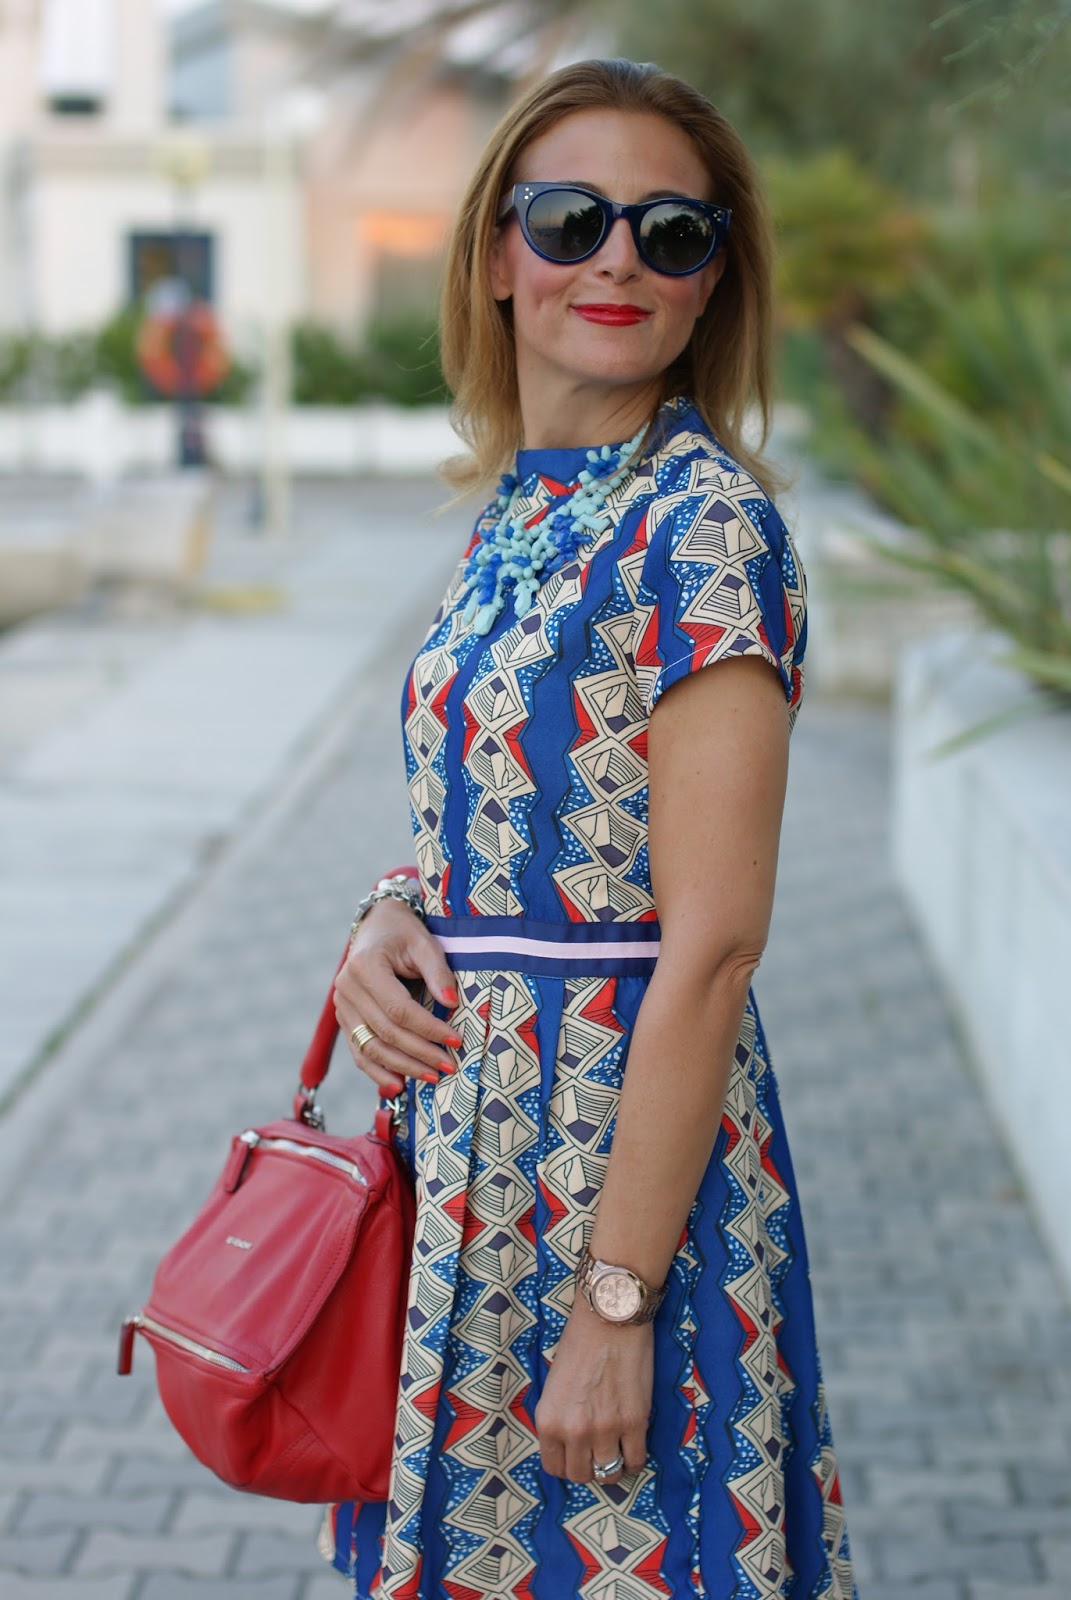 Zaful argyle print short dress, Givenchy Pandora bag in red and Blue sunglasses from Hype Glass on Fashion and Cookies fashion blog, fashion blogger style